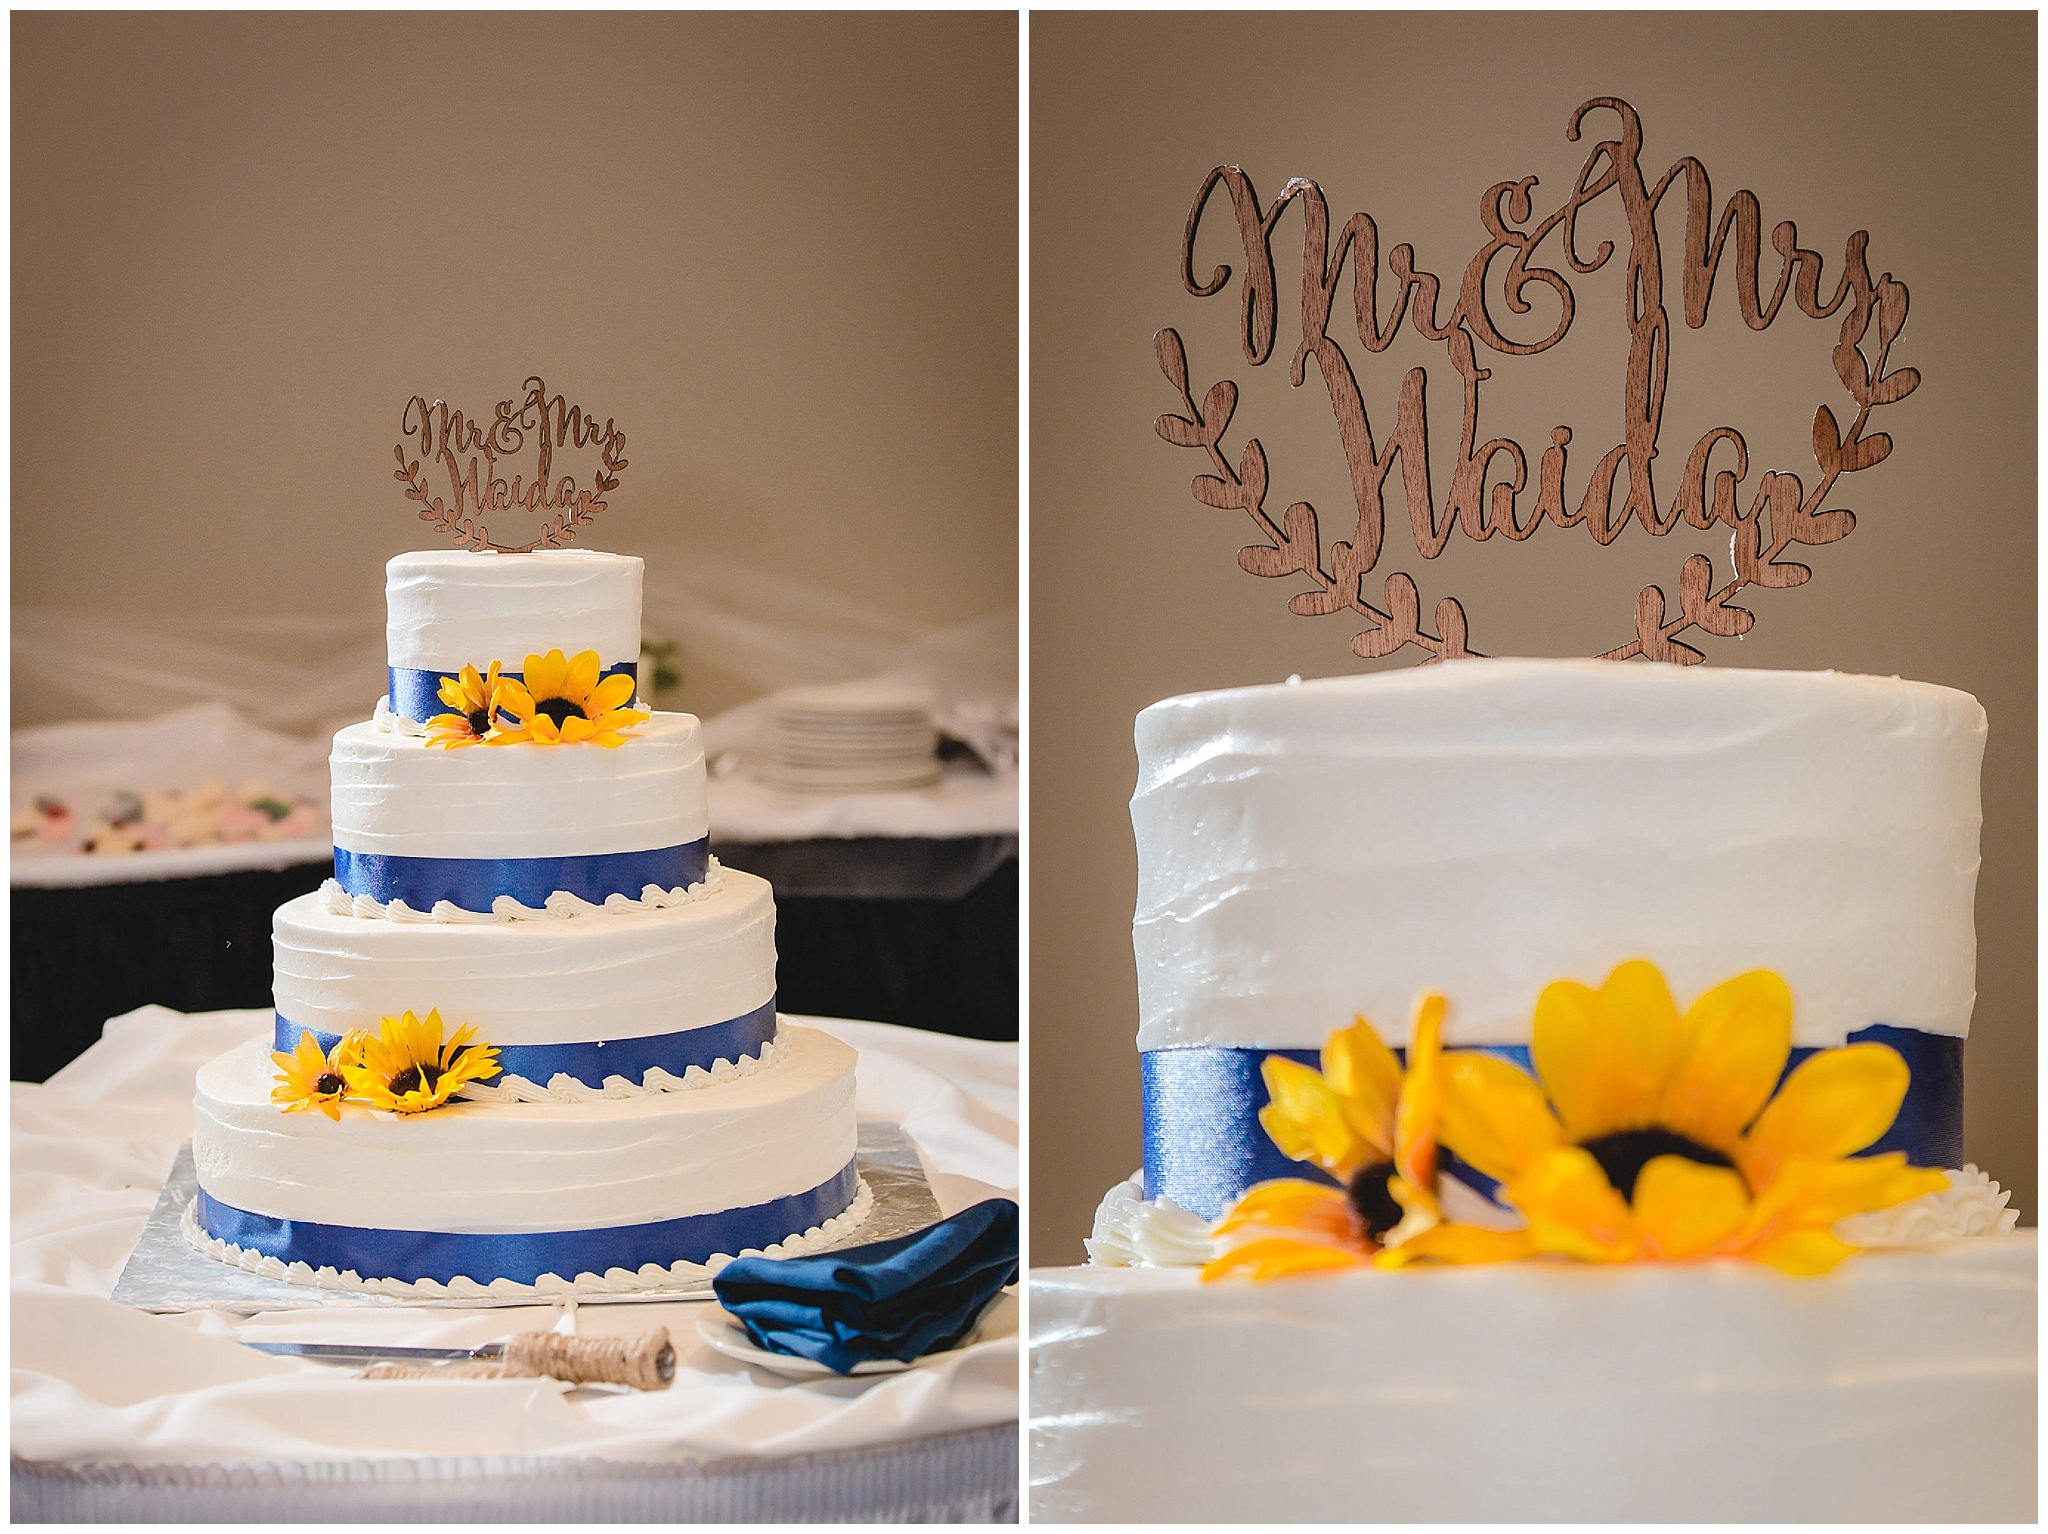 Wedding cake with blue stripes and yellow flowers at a reception at the Fez